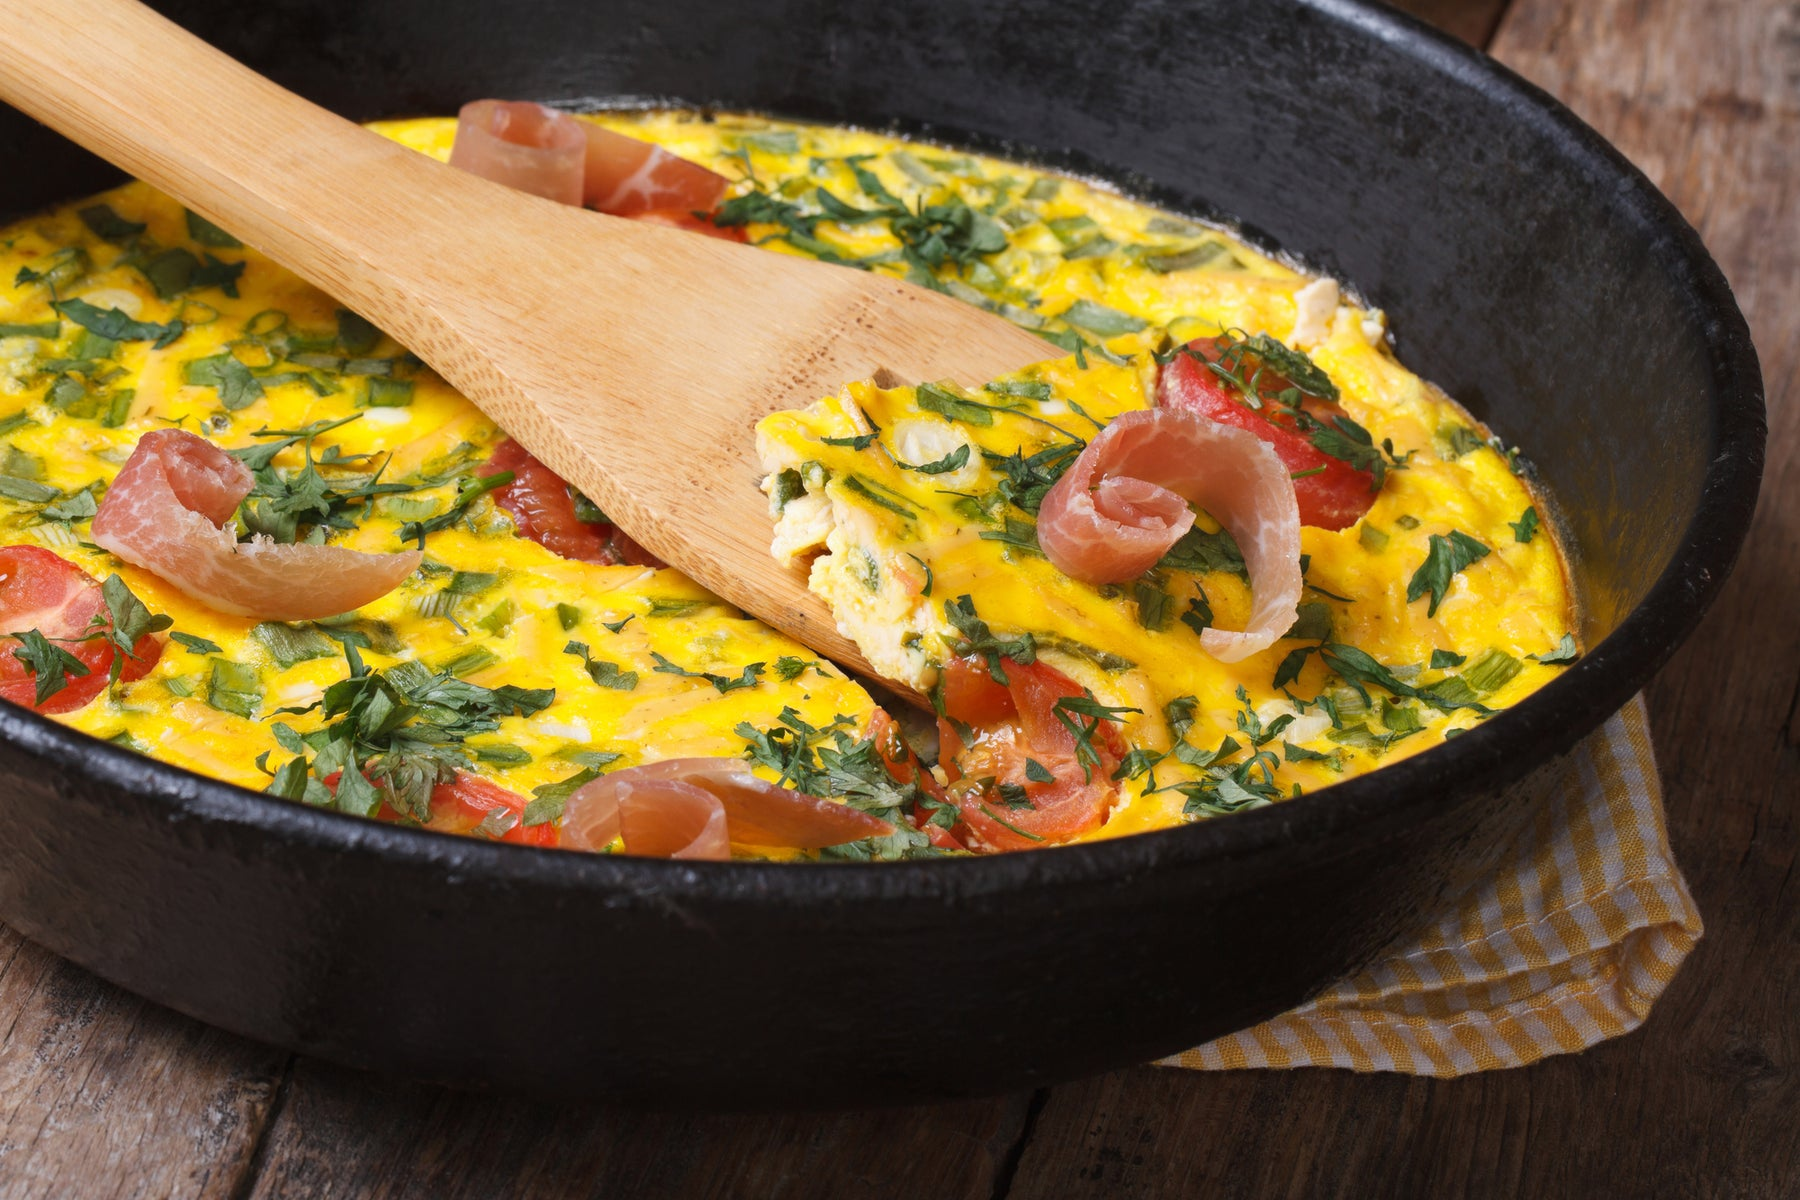 Keto Prosciutto Eggs and Herb Skillet